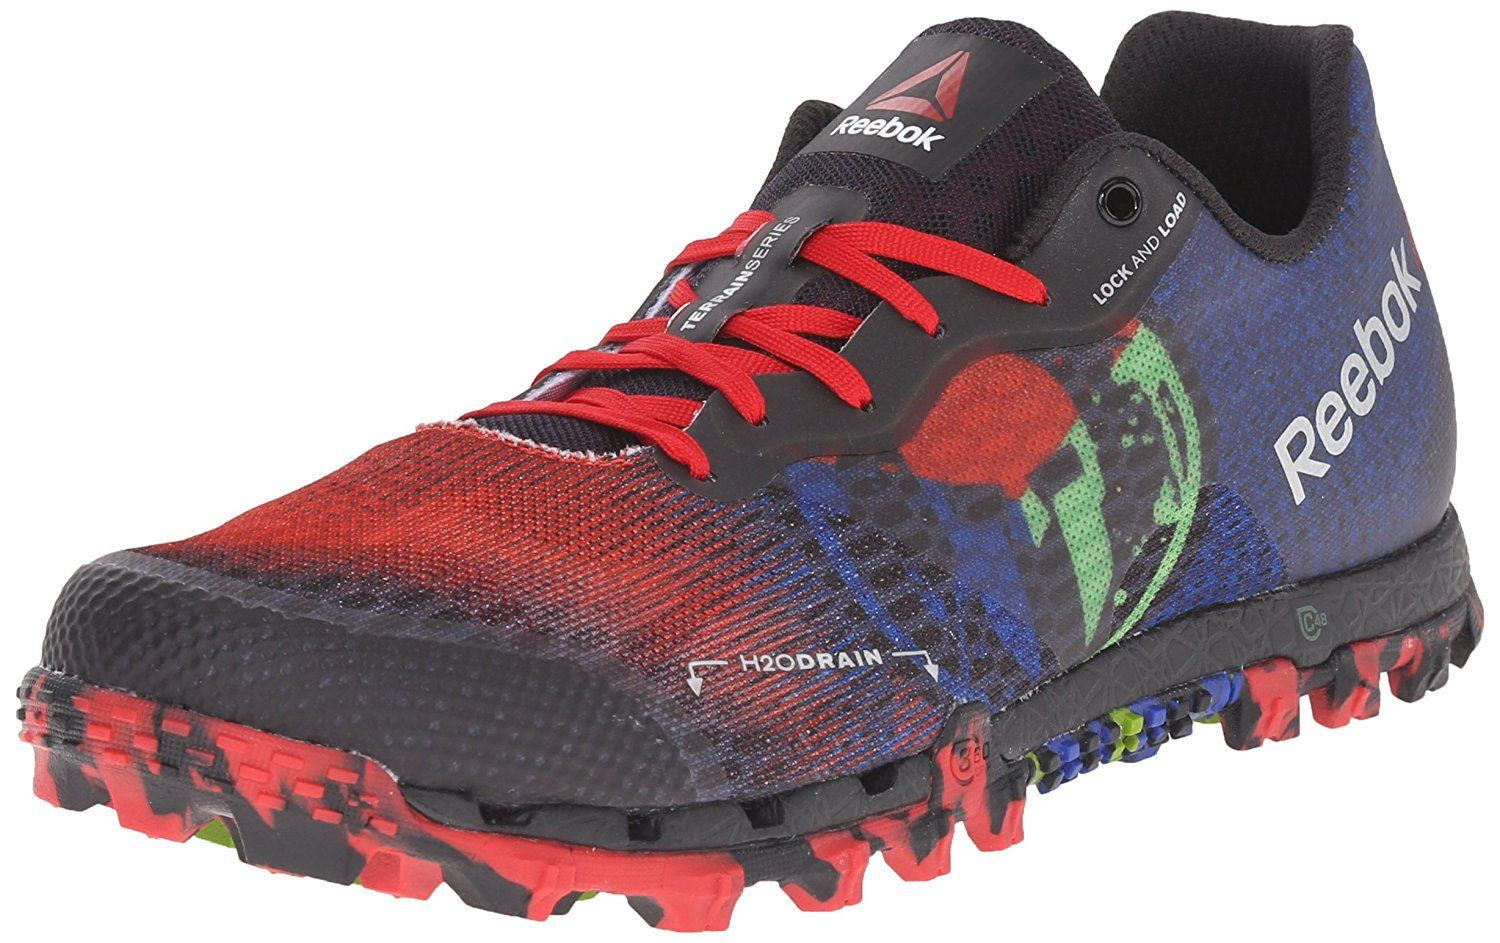 Reebok Womens All Terrain Super 20 Tri Trail Running Shoe Read